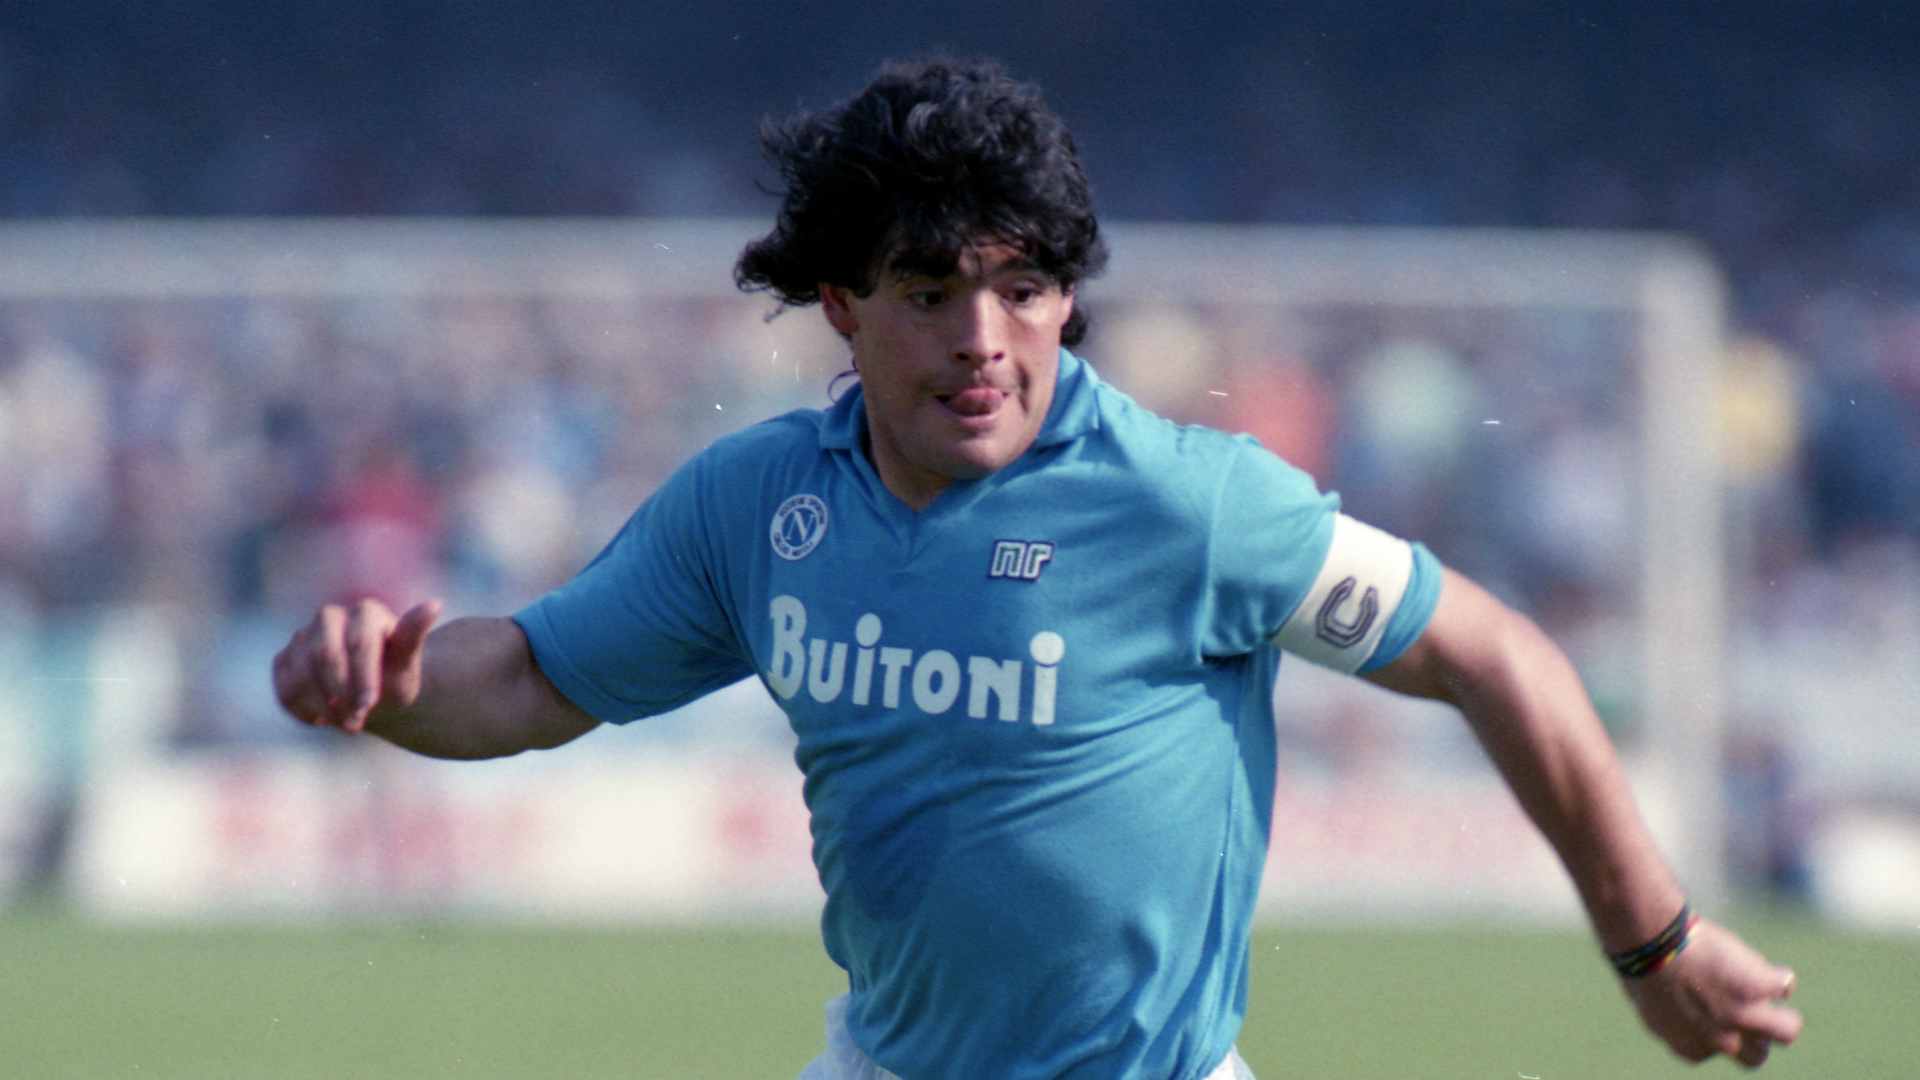 Diego Maradona dies: A look at the Argentina and Napoli icon's greatest ever goals